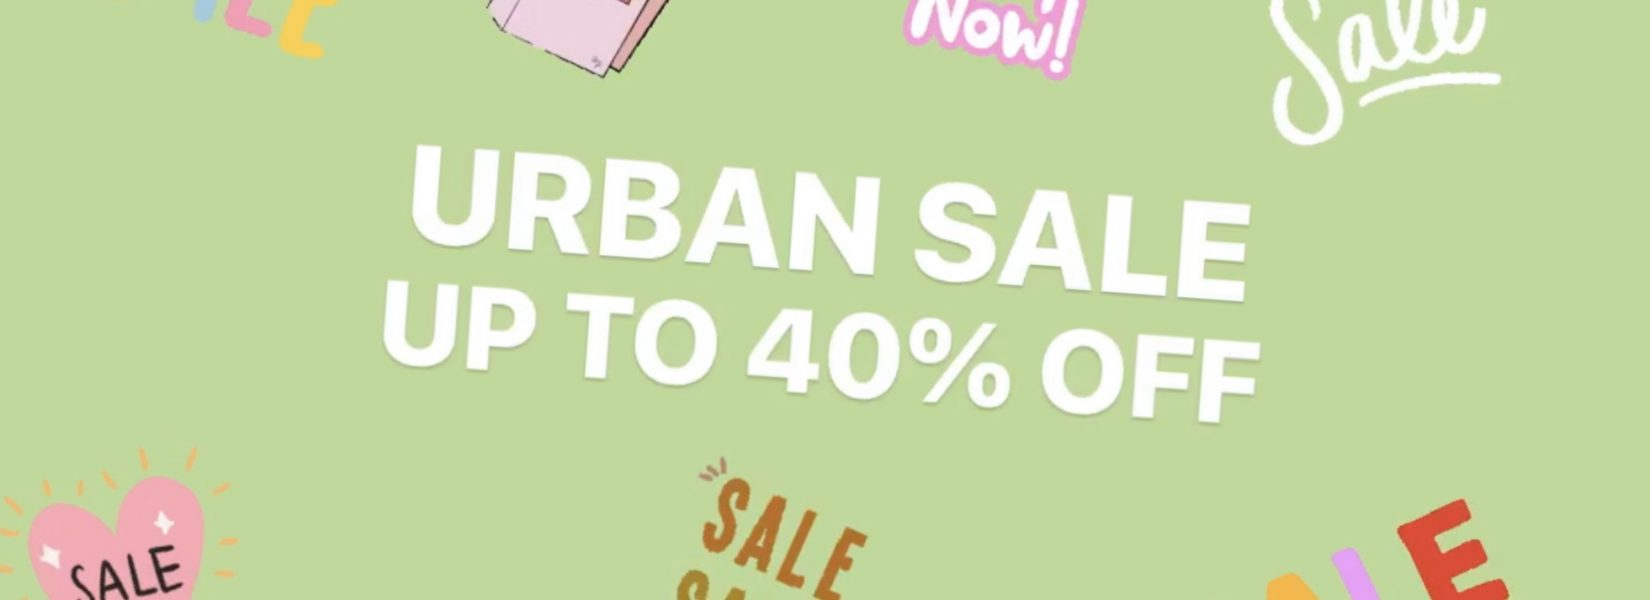 URBAN OUTFITTERS SALE! Up to 40% off!